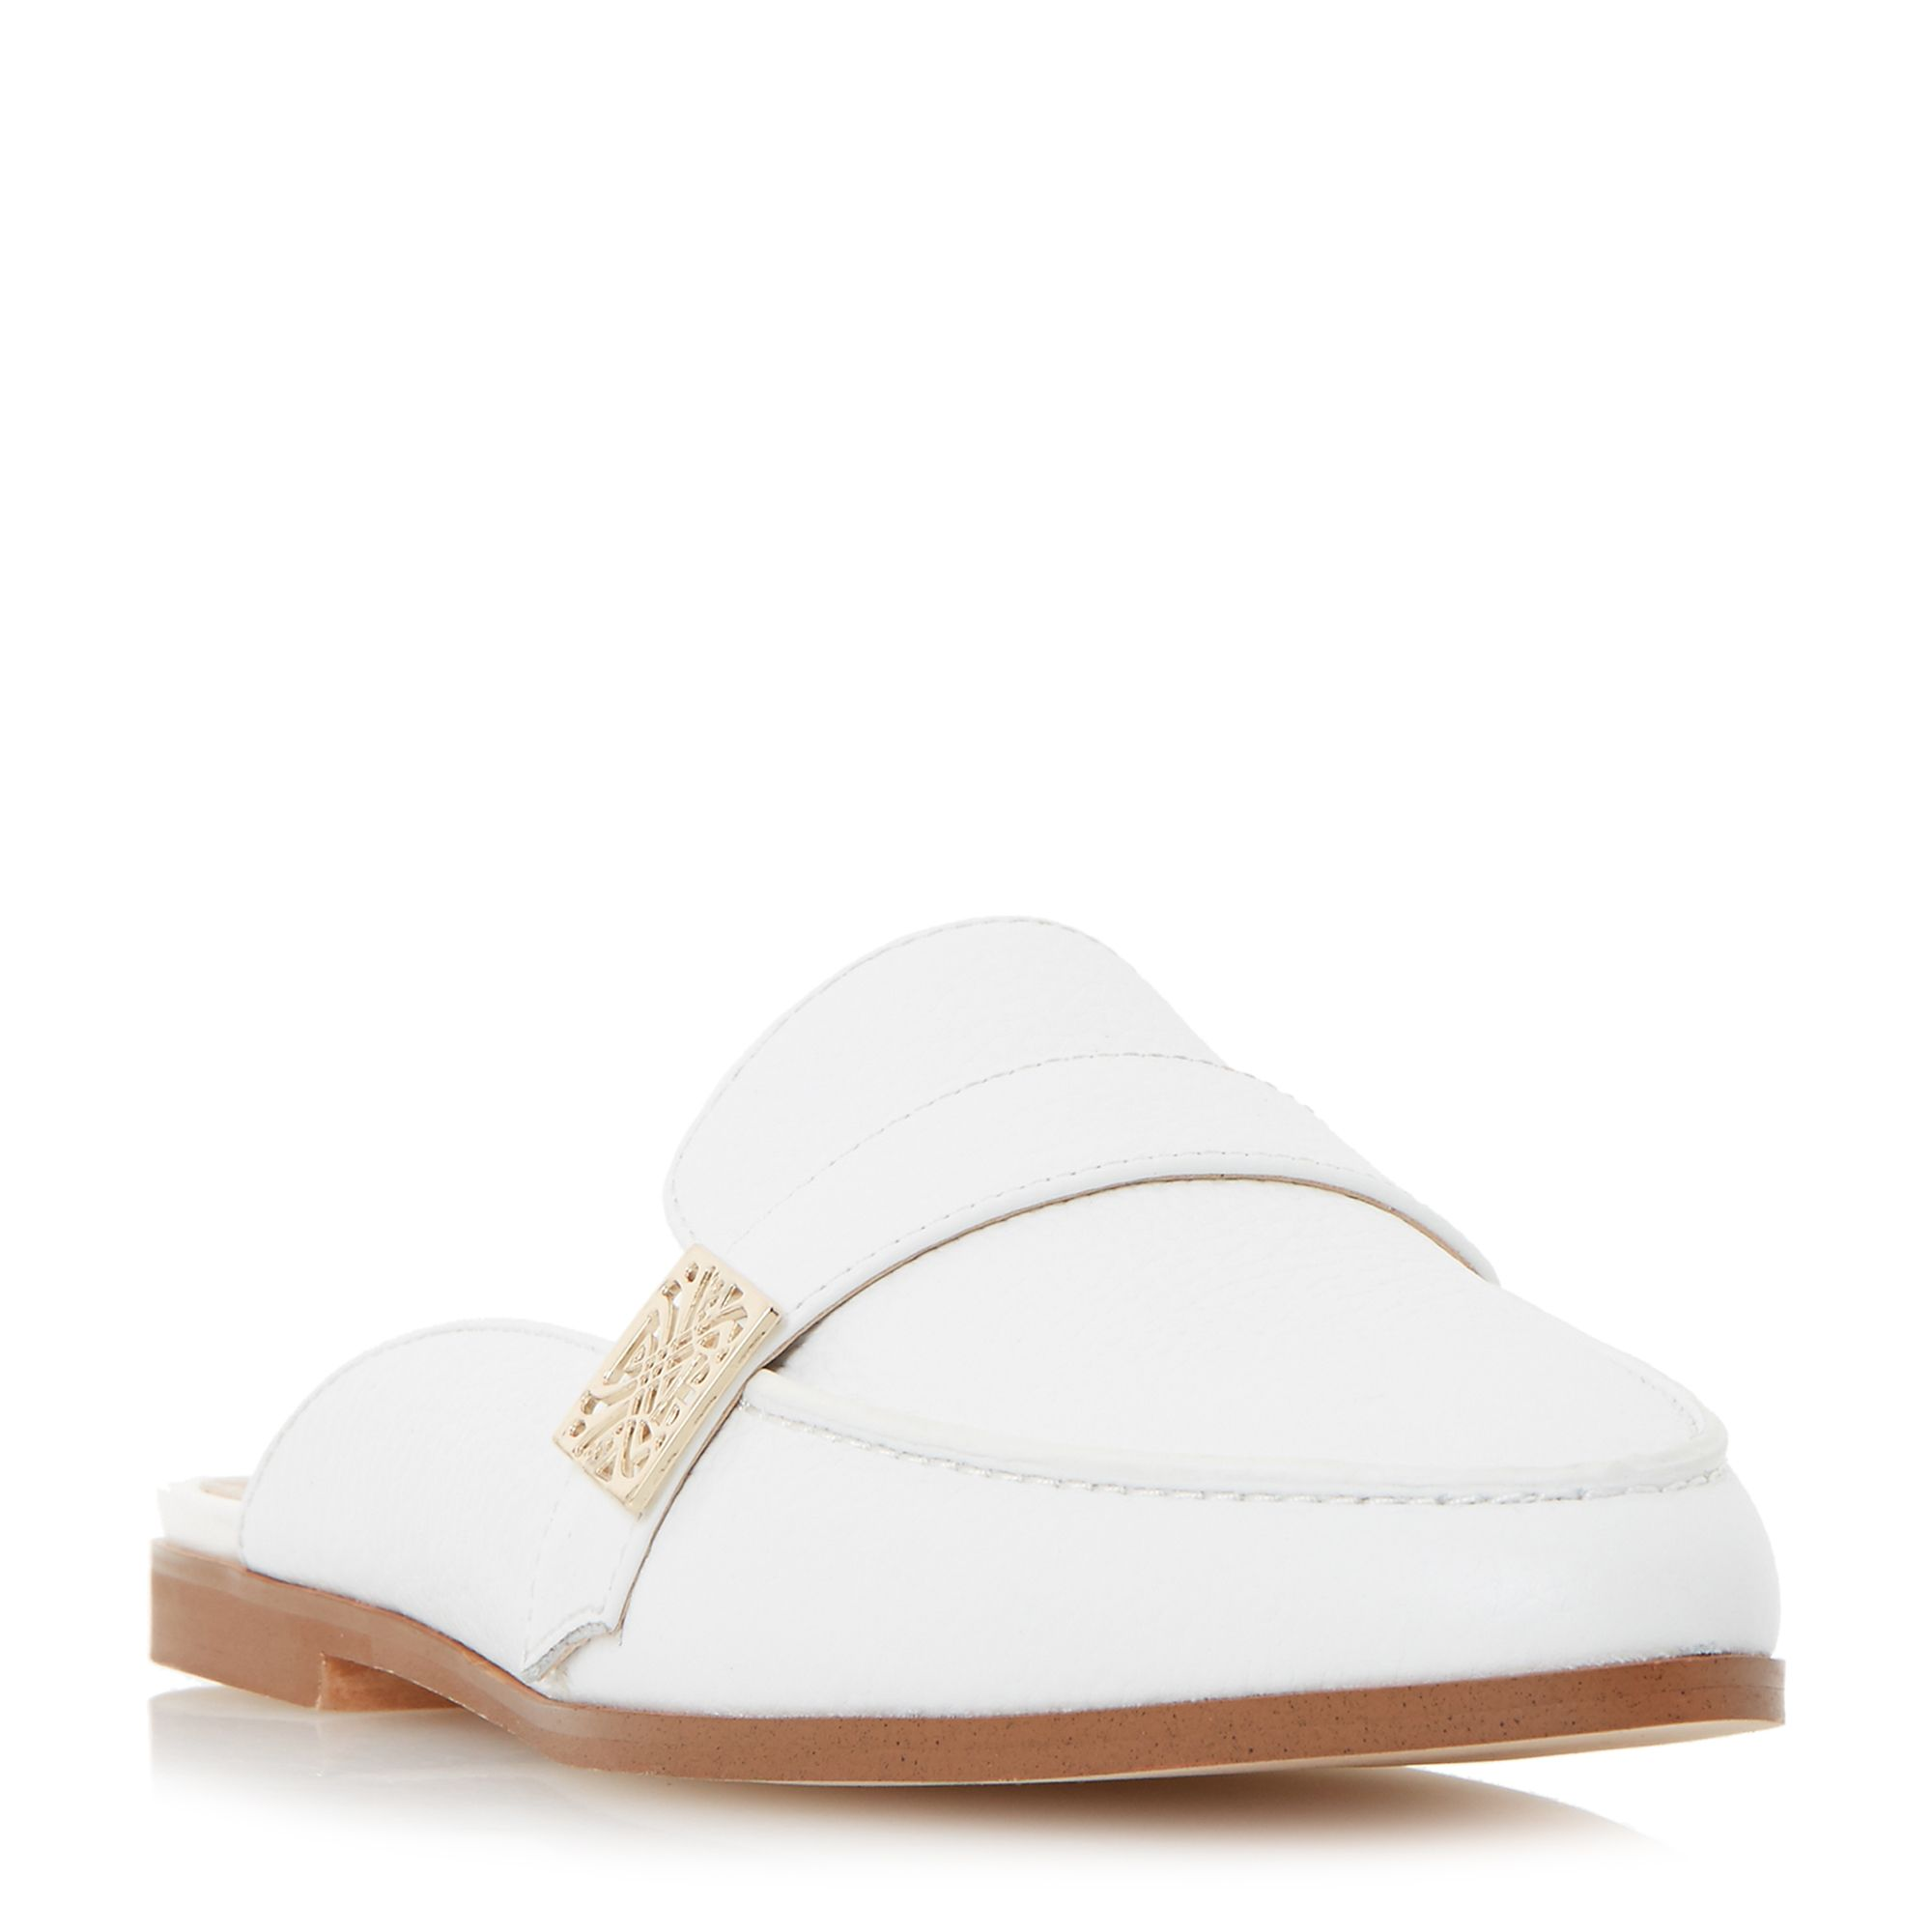 Biba Biba Gisela backless loafer, White